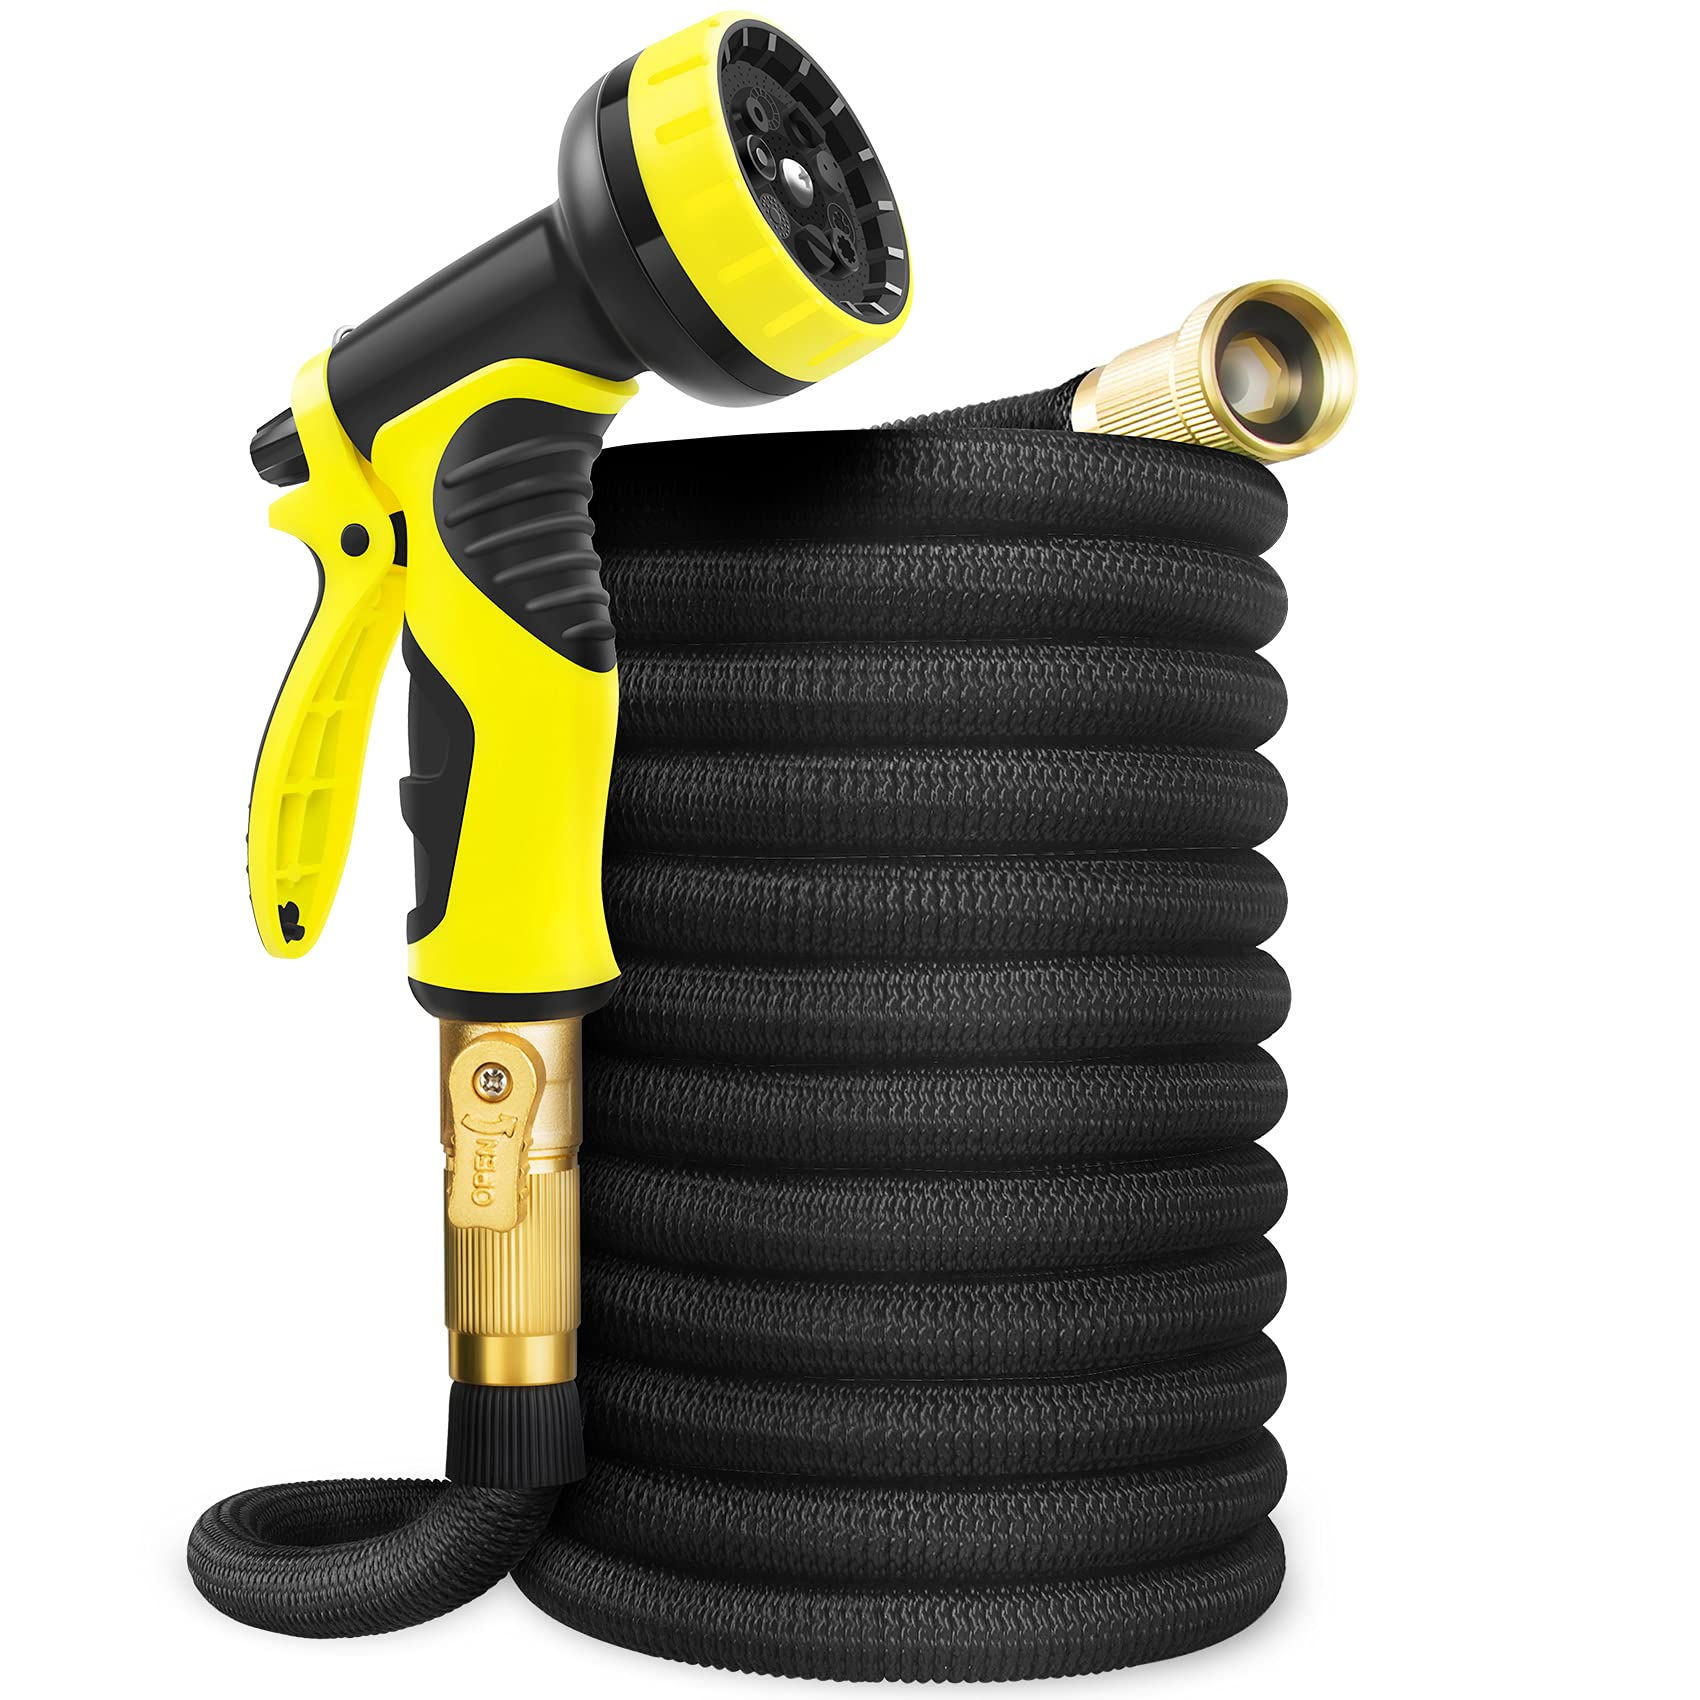 Aterod 50FT Garden Hose Expandable Hose, Flexible Water Hose with Spray Nozzle, Car Wash Hose with Solid Brass Connector, Leakproof Lightweight Expanding Pipe for Watering and Washing